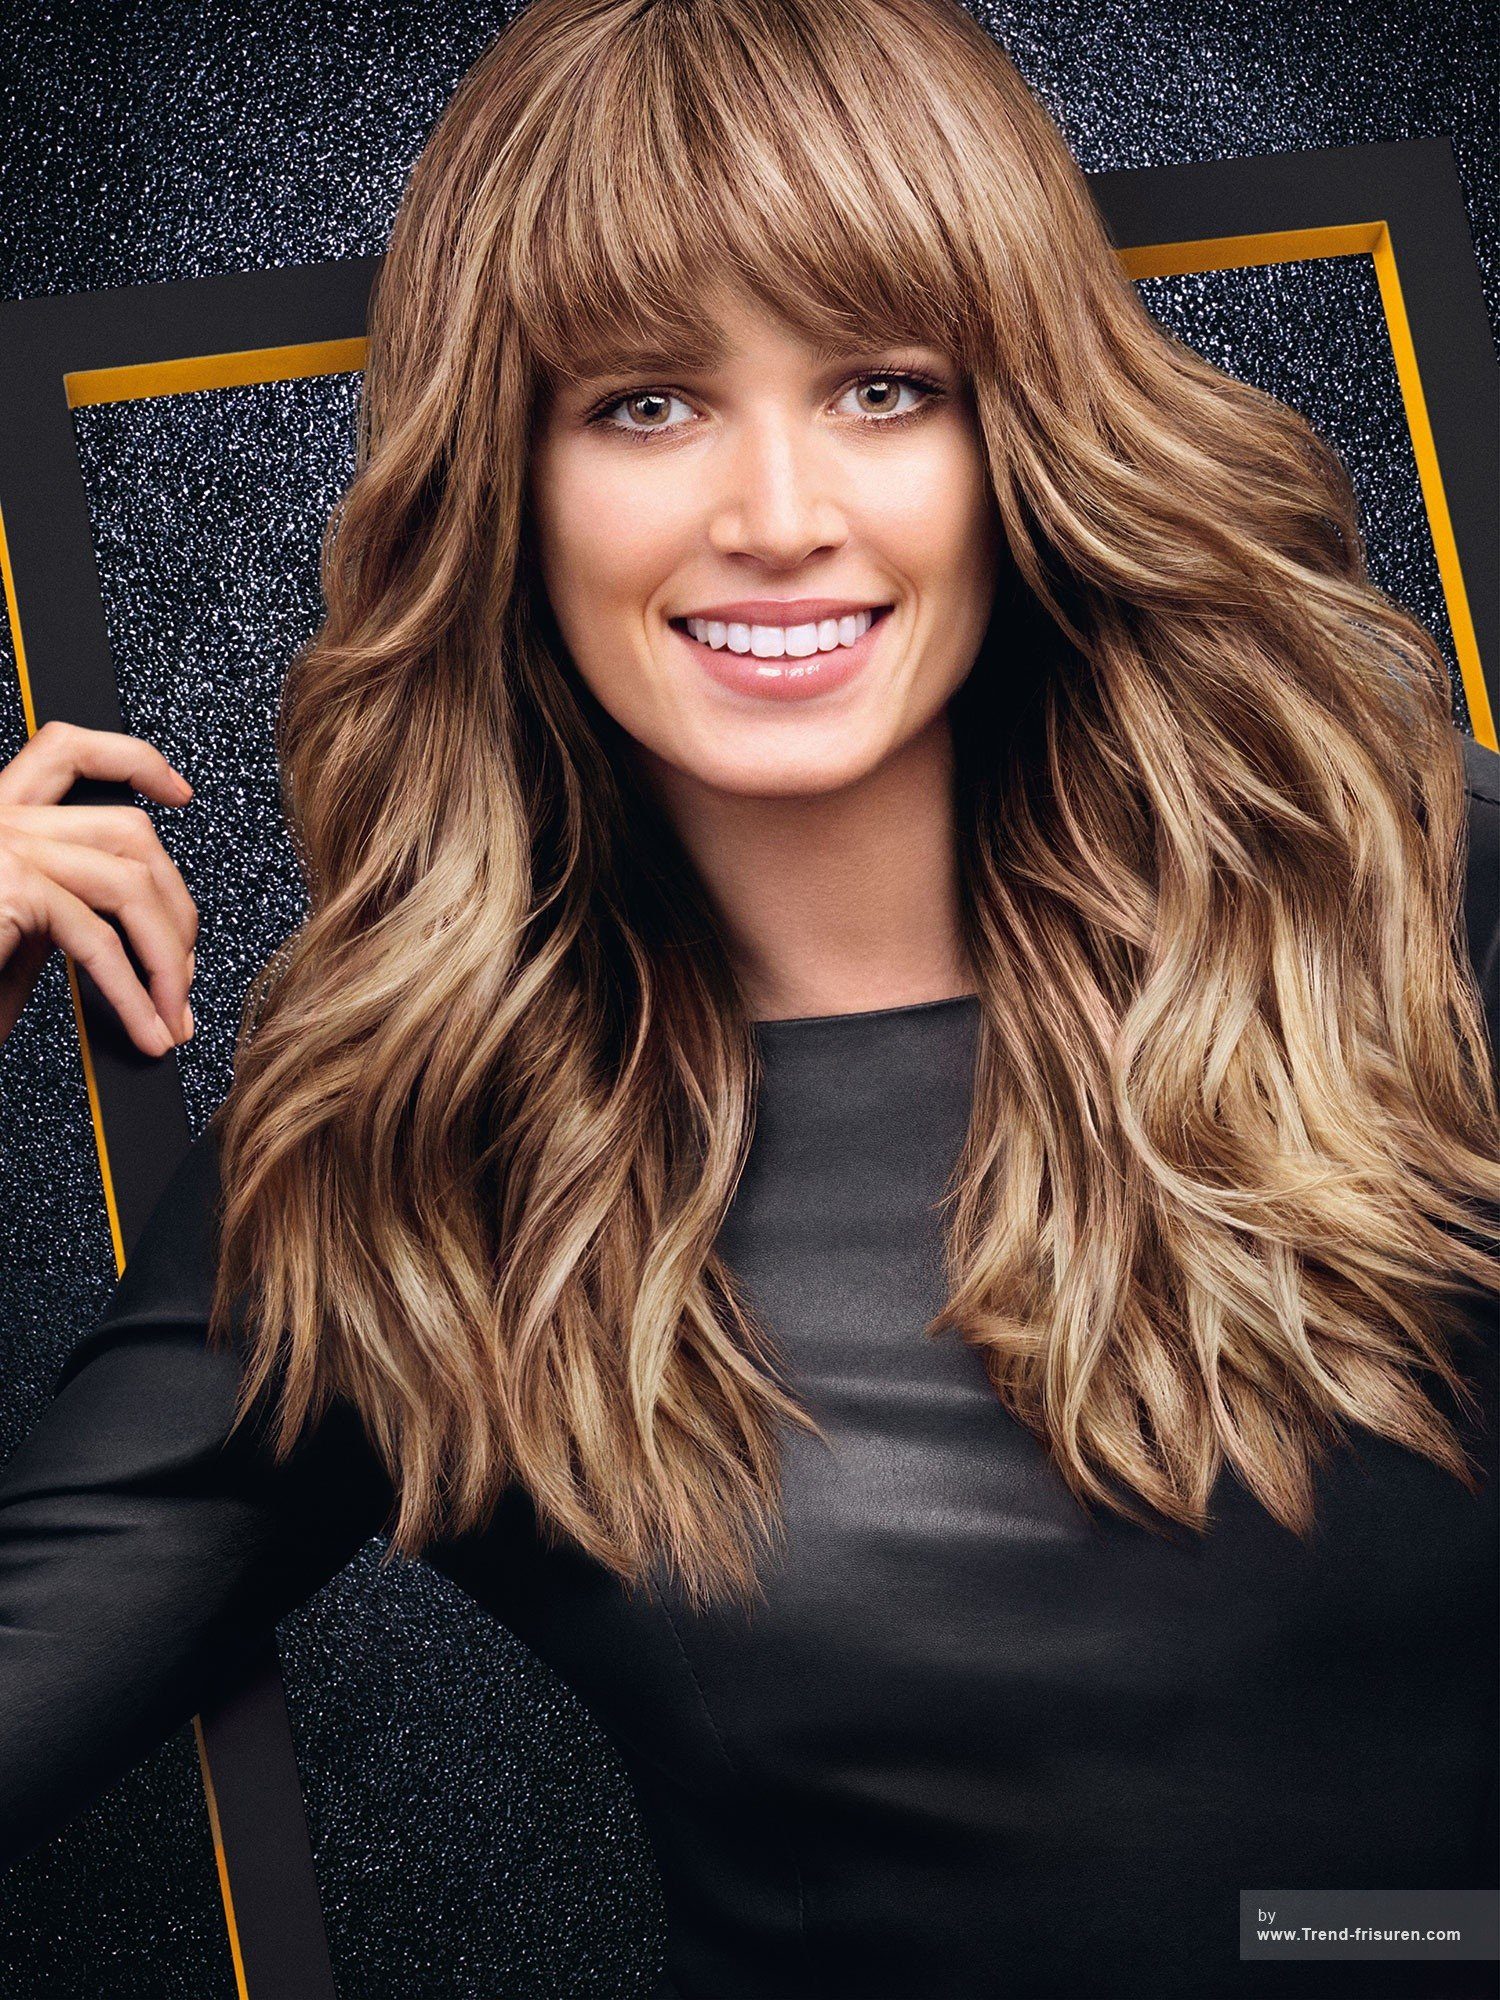 Herbst Winter Frisuren 2016 Frisuren Magazin